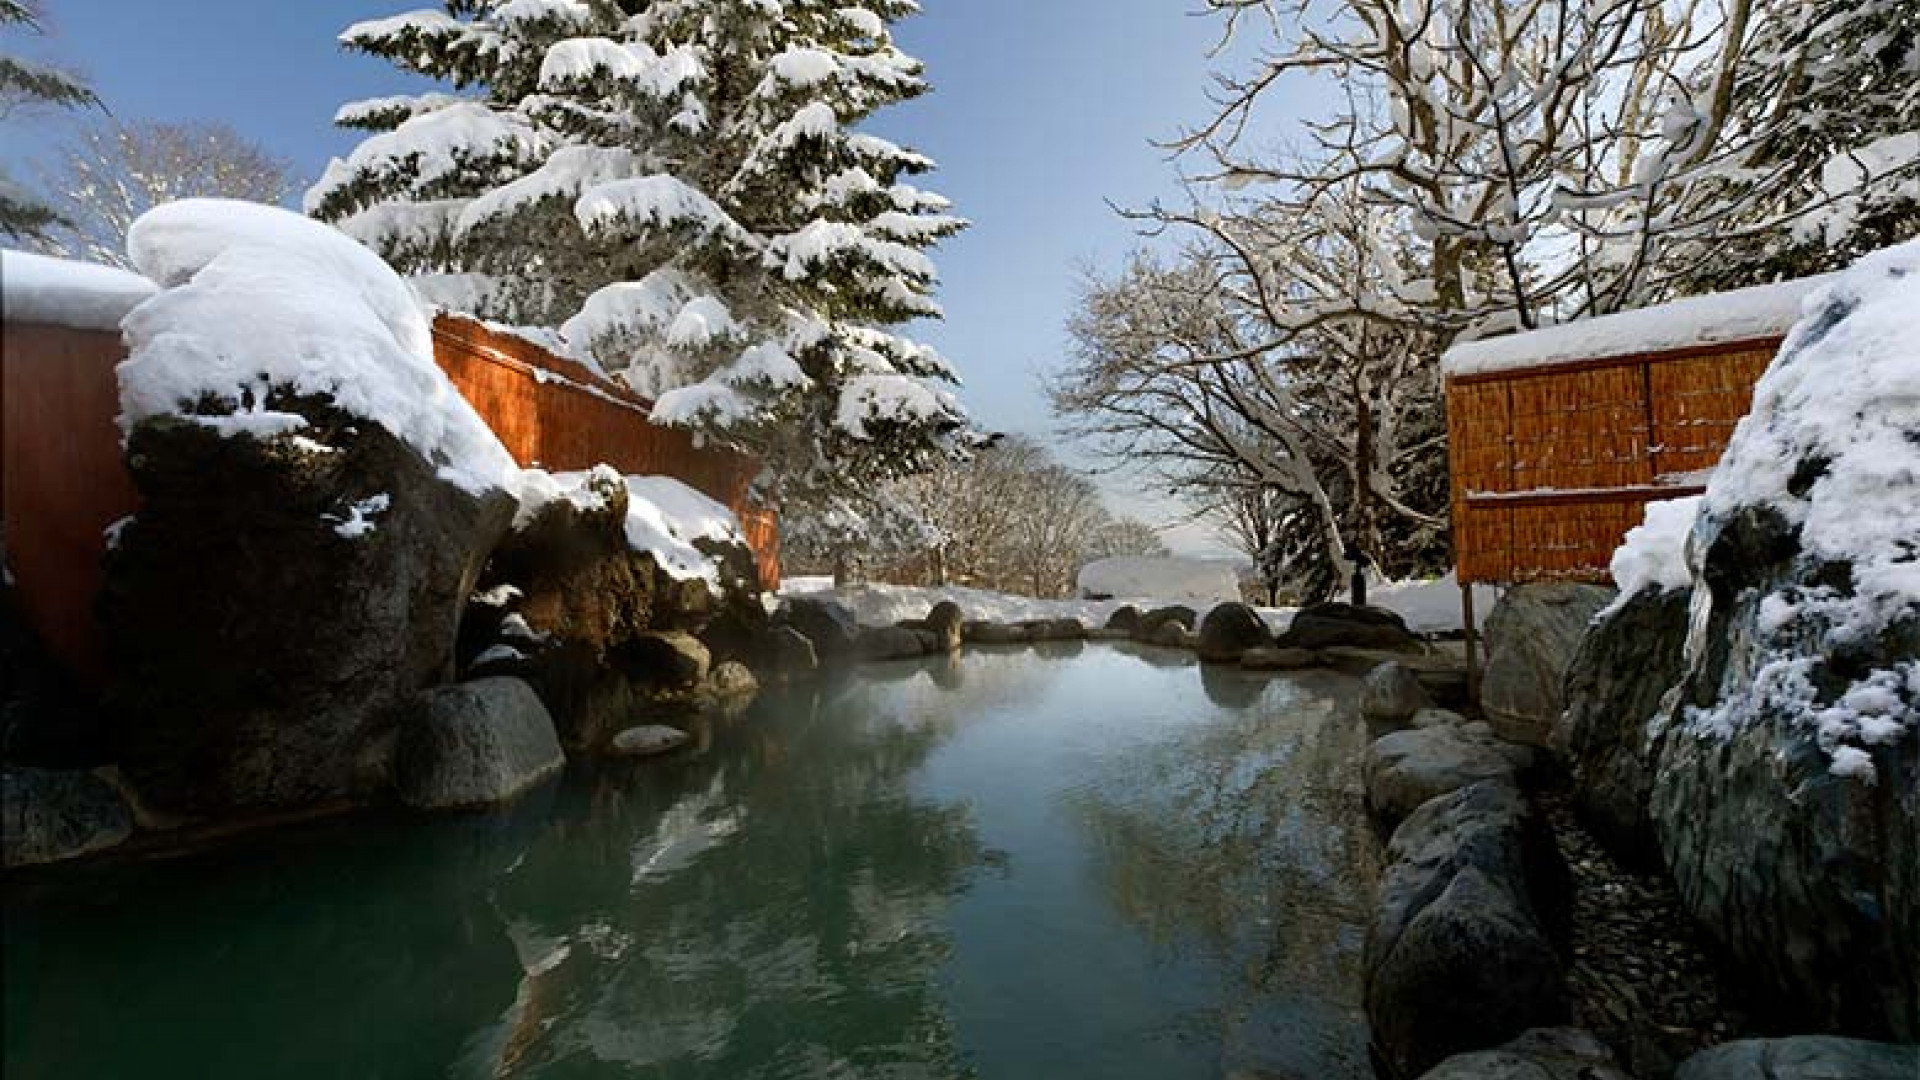 The onsen at the Greenleaf hotel, Japan